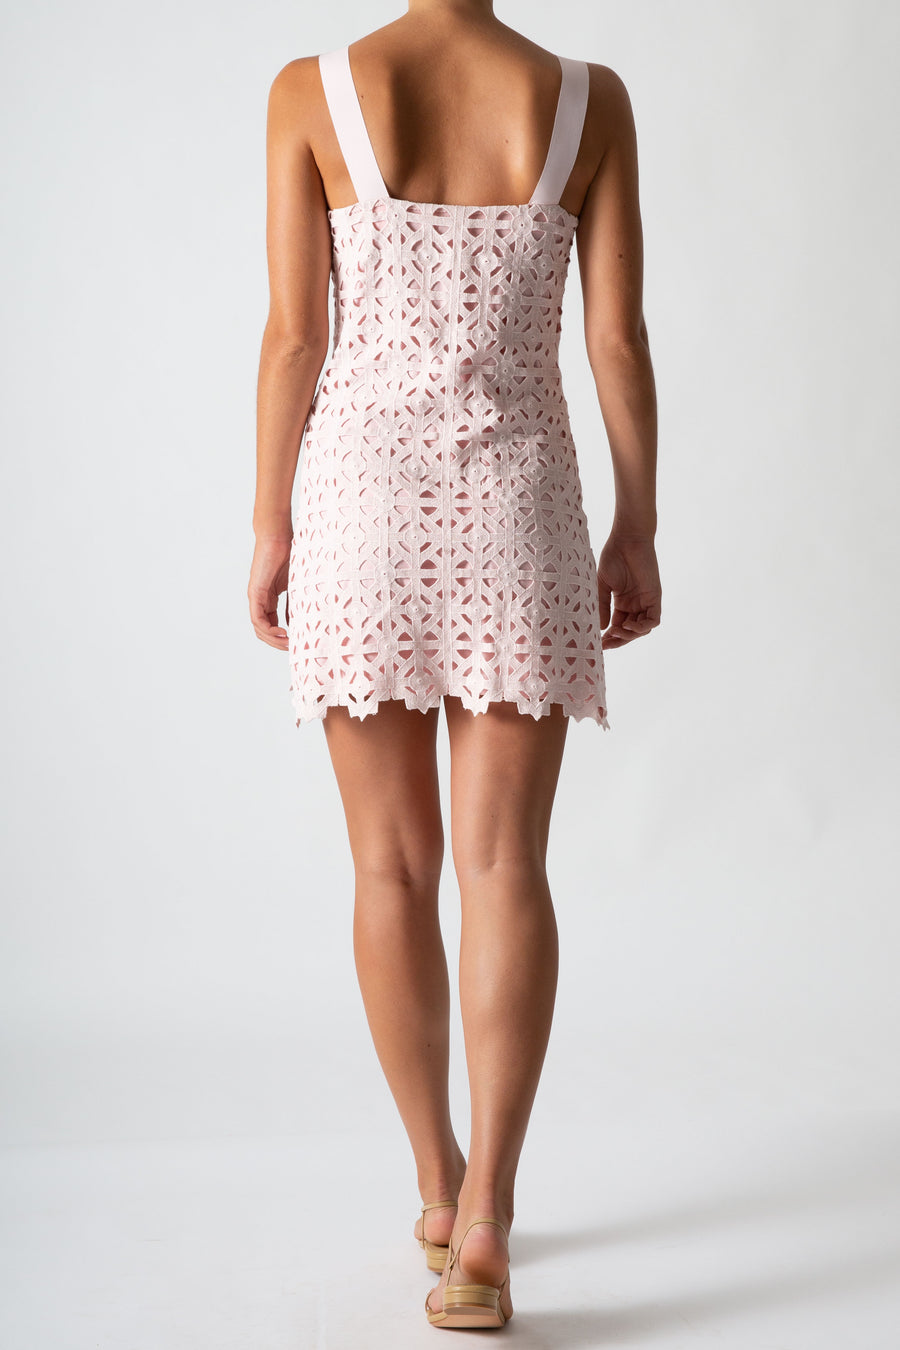 This is a back view photo of a woman wearing a mini pink lace dress with ribbon straps.